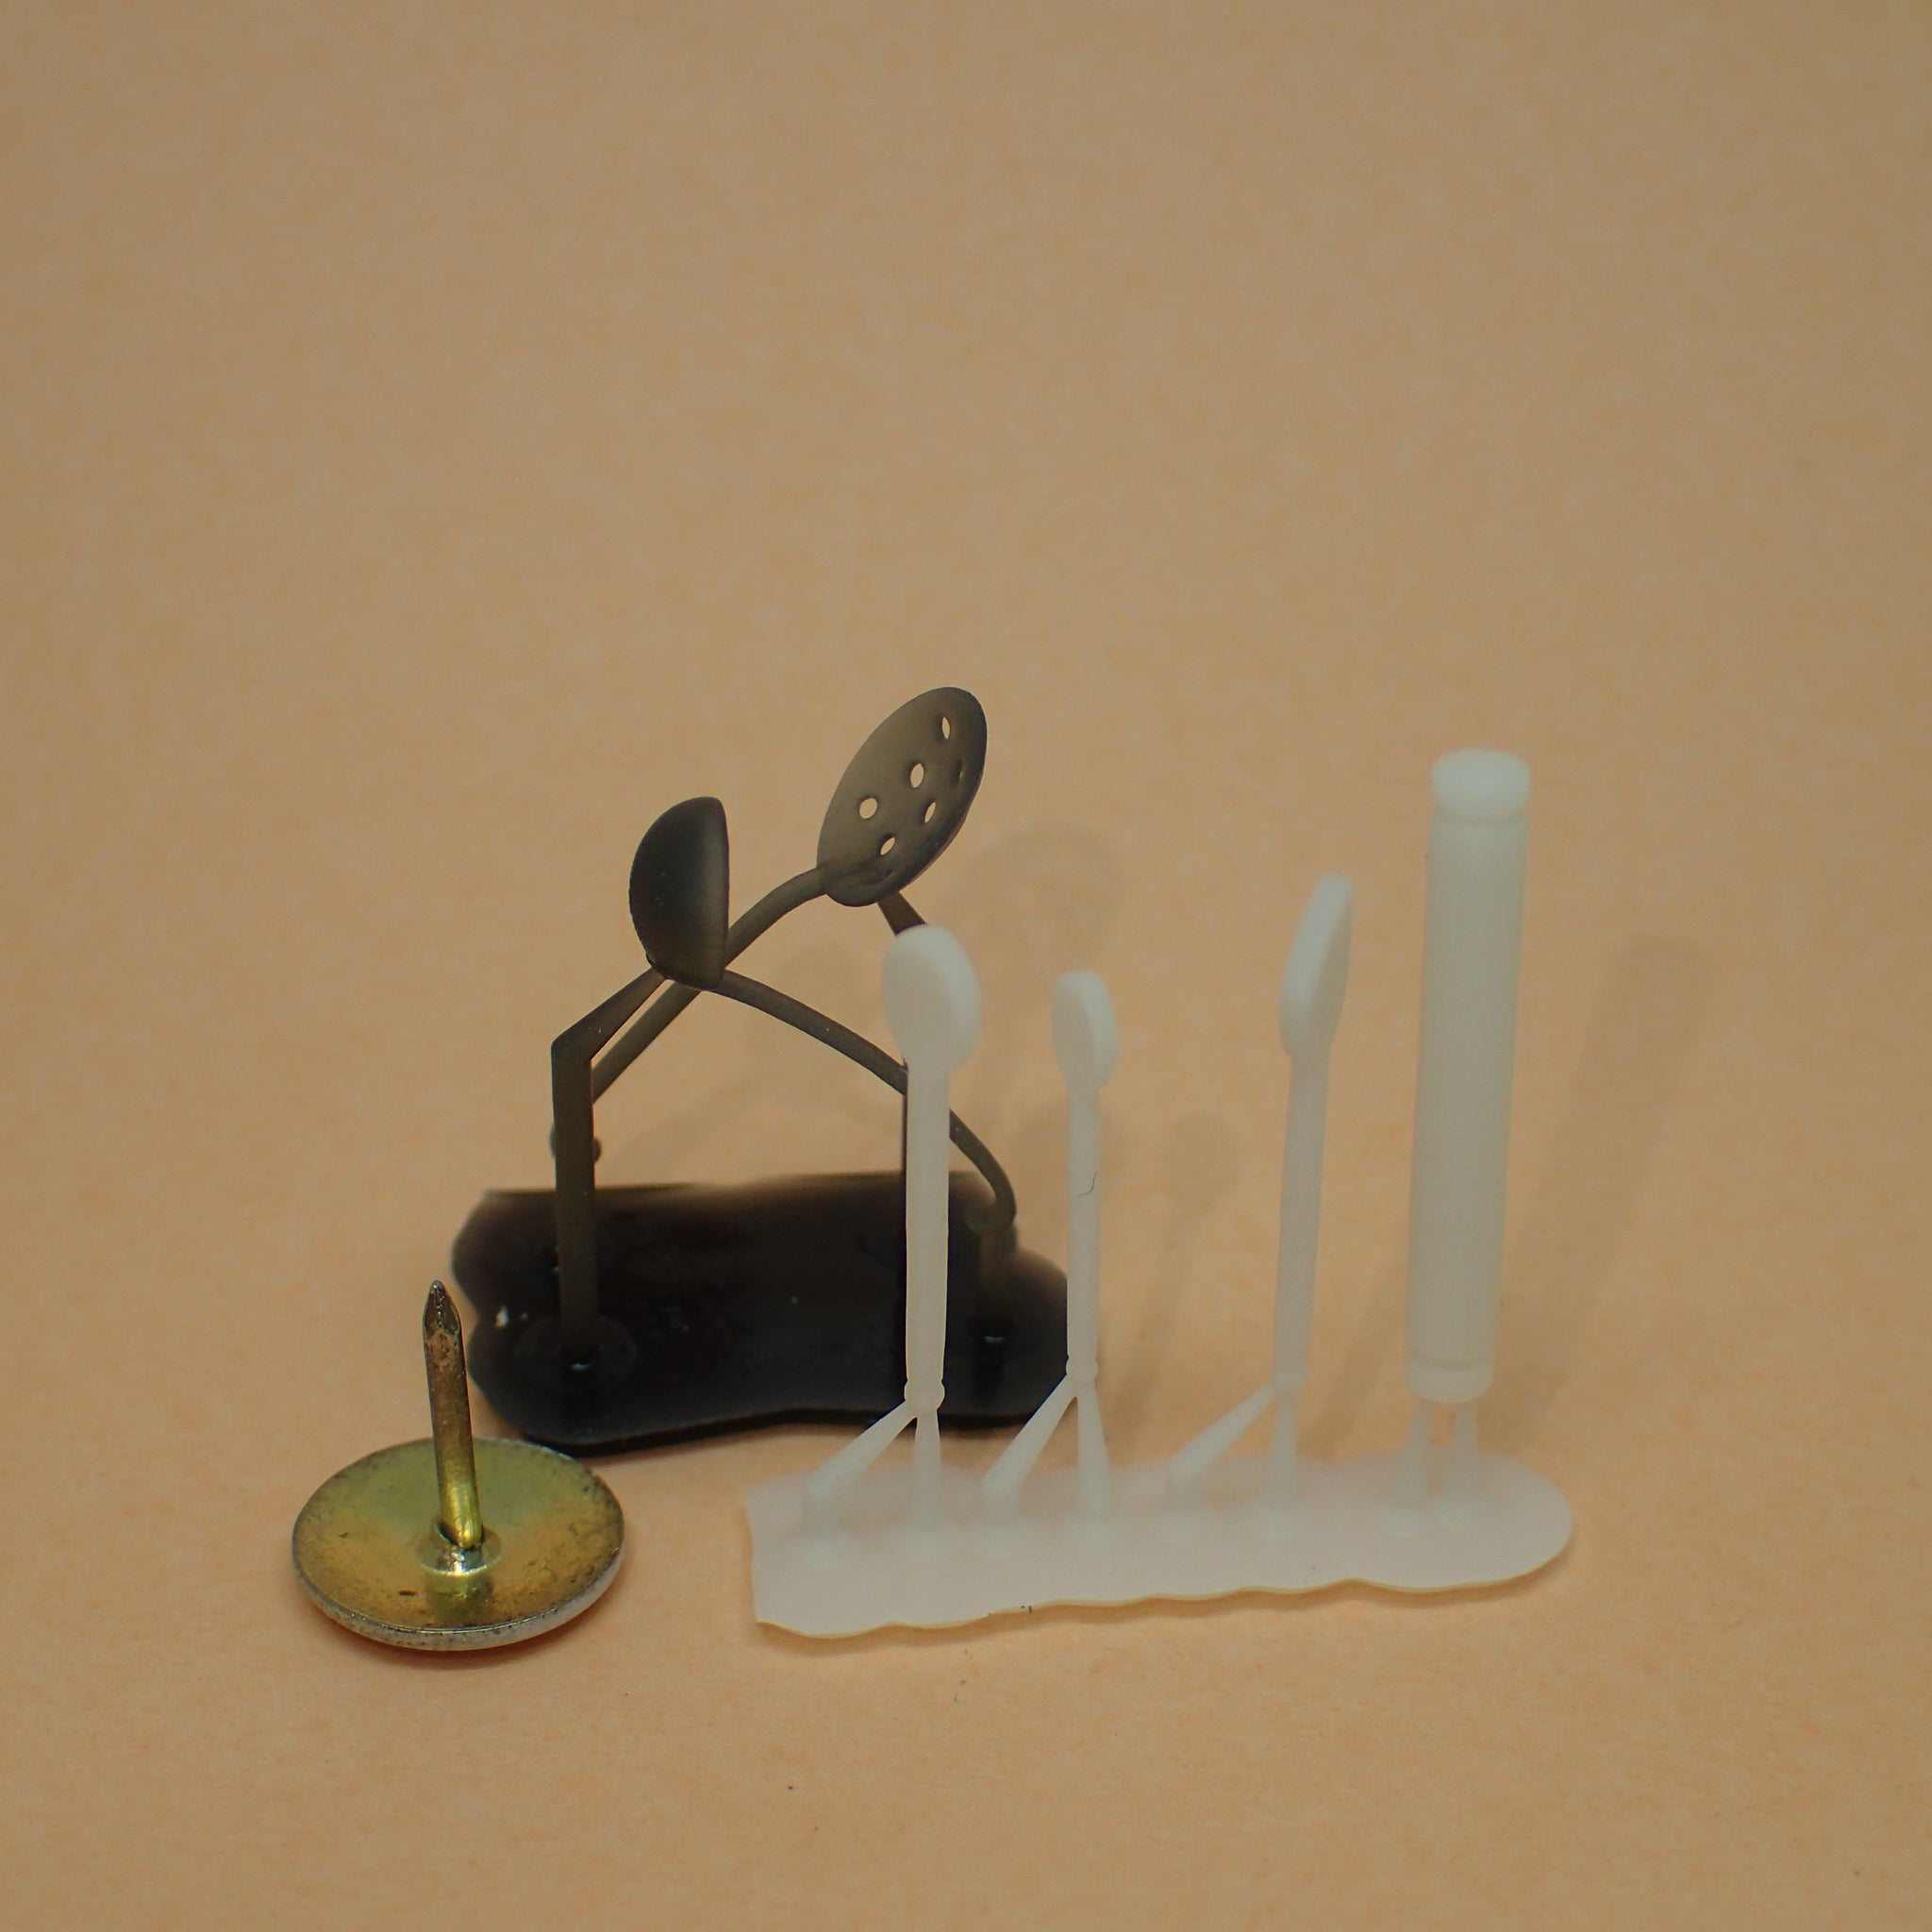 Kitchen utensils set, 1/24th scale